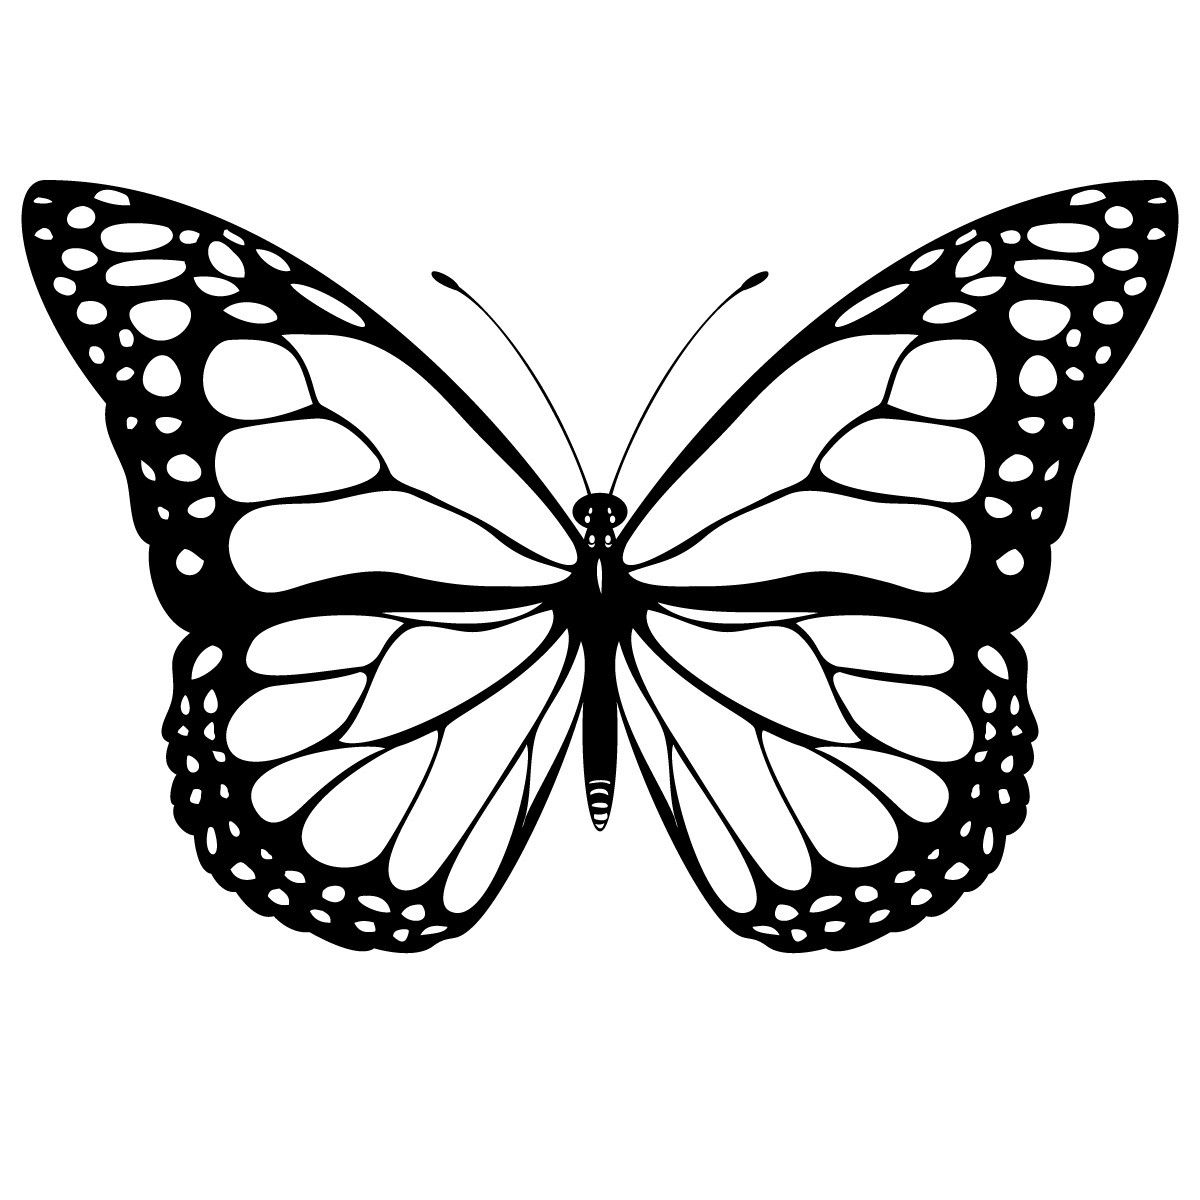 Science Free Printable Butterfly Coloring Pages For Kids Butterfly Clip Art Butterfly Printable Butterfly Coloring Page